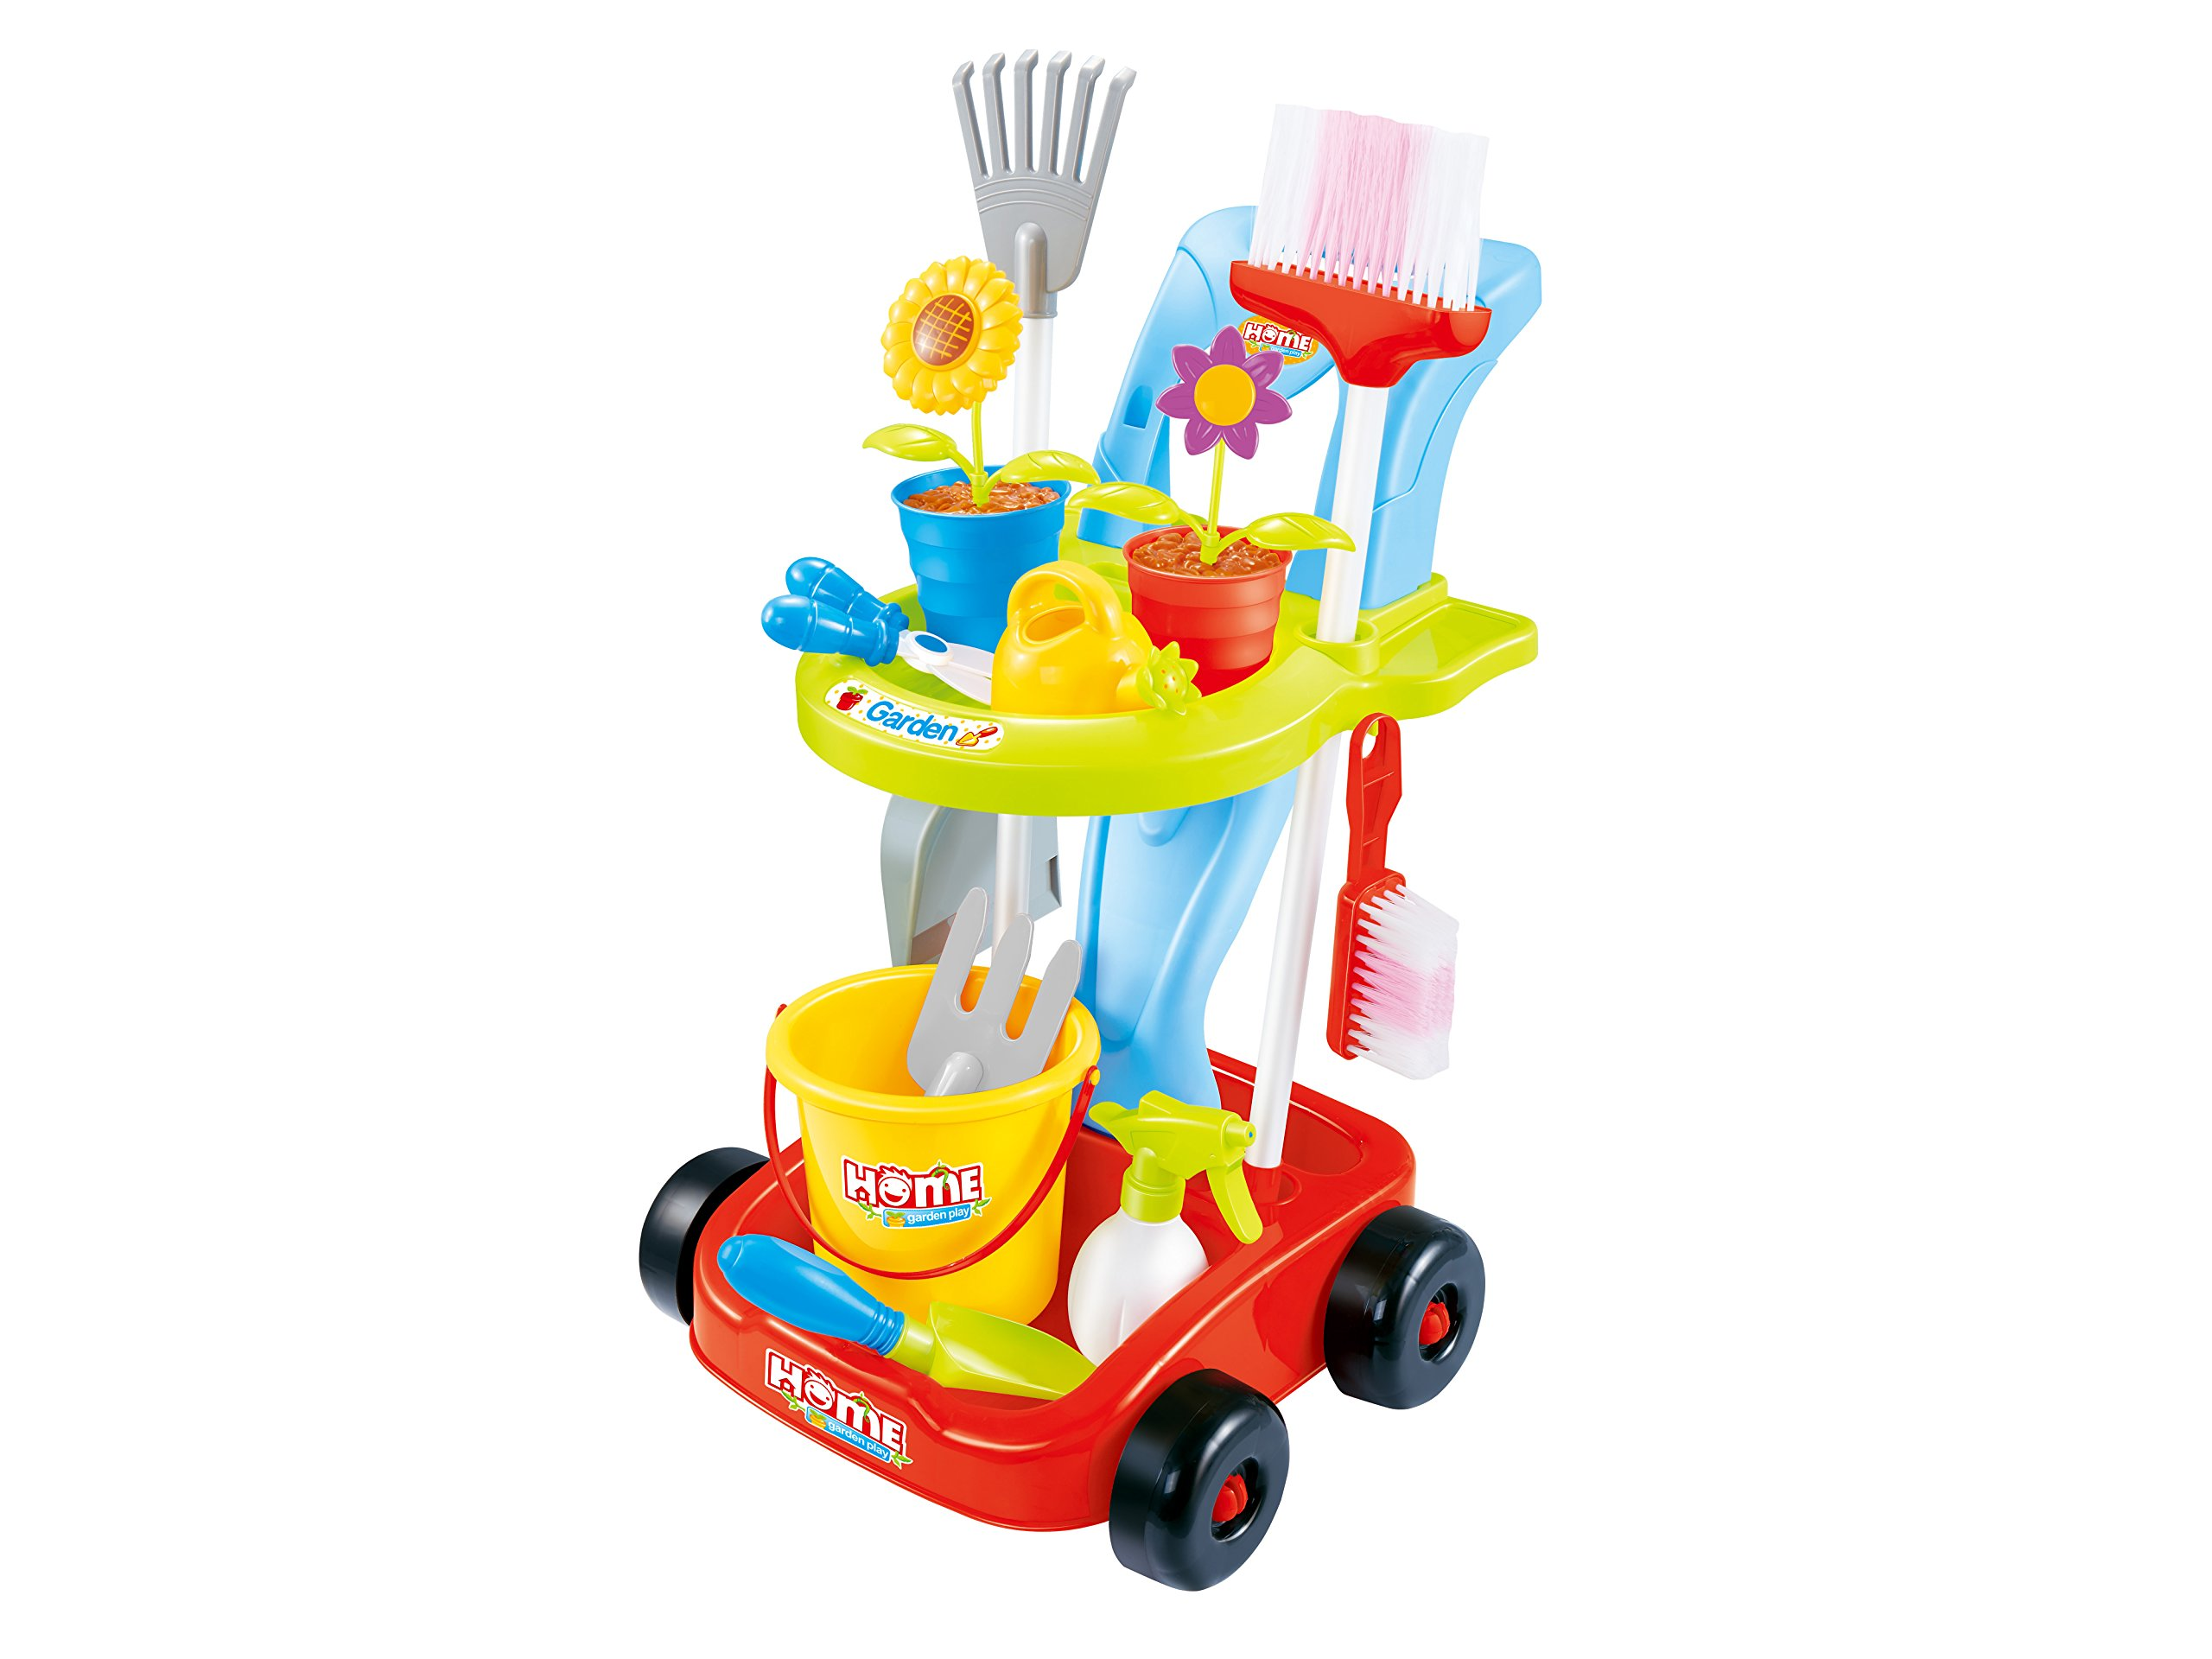 Kids Cleaning Set and Gardening Tools 24pcs Garden and Housekeeping Toys with Leaf Rake, Watering Can, Gardening Hand Cultivator, Trowel,Shovel and Pretend Potted Flower, All in One Gardening Trolley by The M World